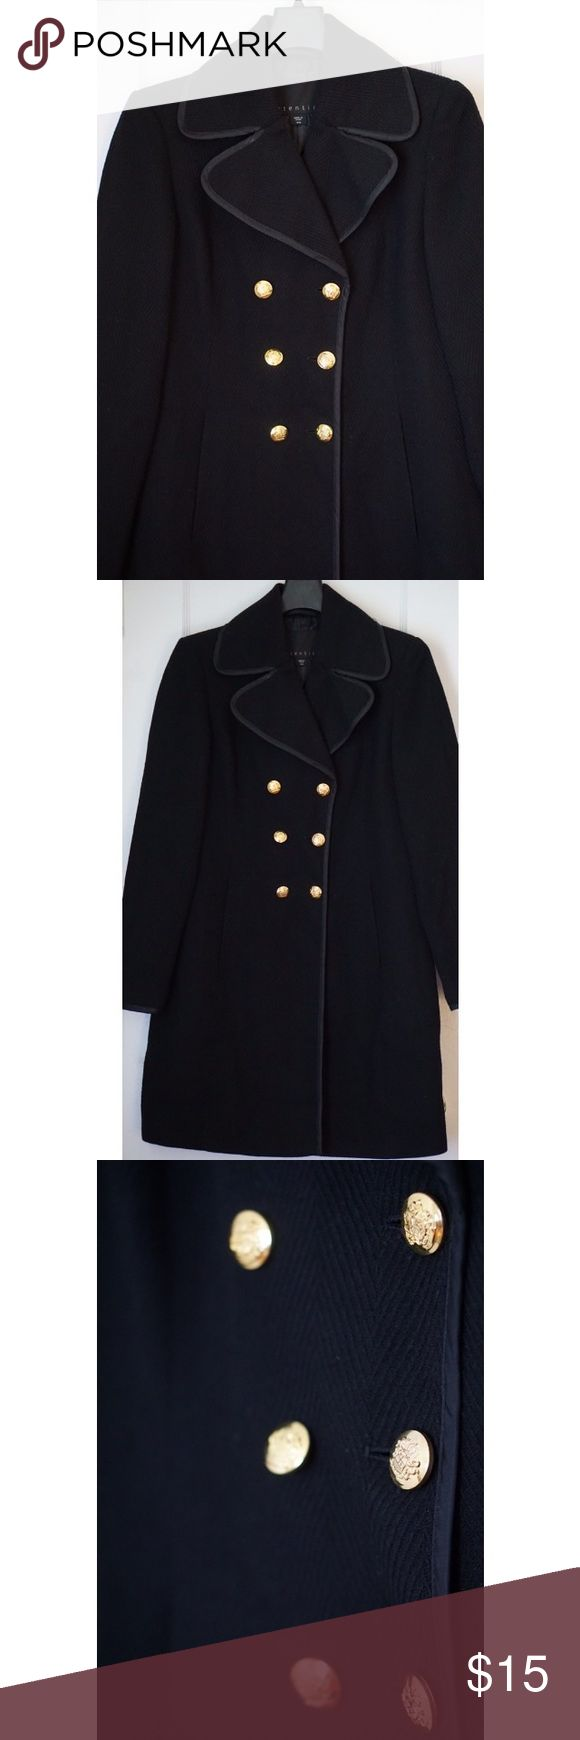 Black Pea Coat Comfortable and in great condition! Keeps you nice and warm. It also has a nice textured pattern with gold detailing. I'm 5'2 and it ends right below my knee. Jackets & Coats Pea Coats